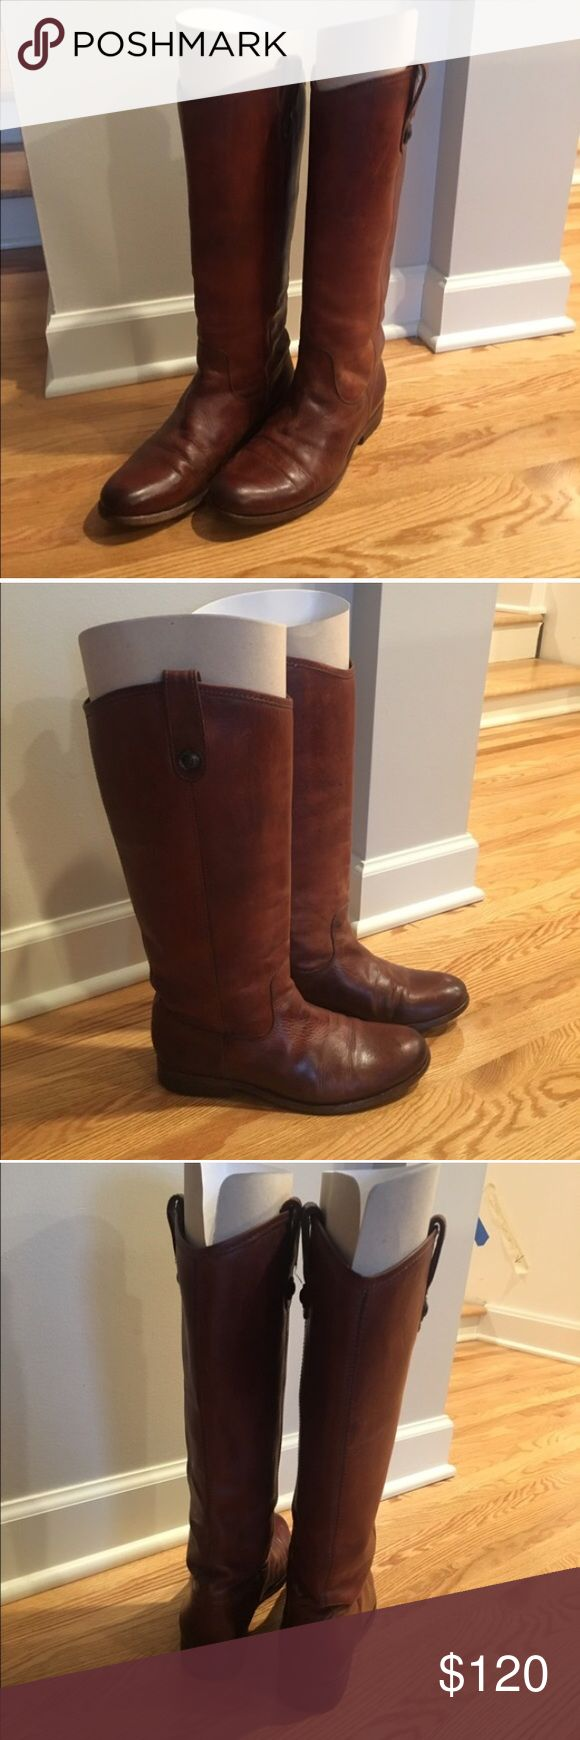 Frye Melissa Boots Professionally cleaned in November, worn but still have a lot of life left, great boots! Frye Shoes Winter & Rain Boots